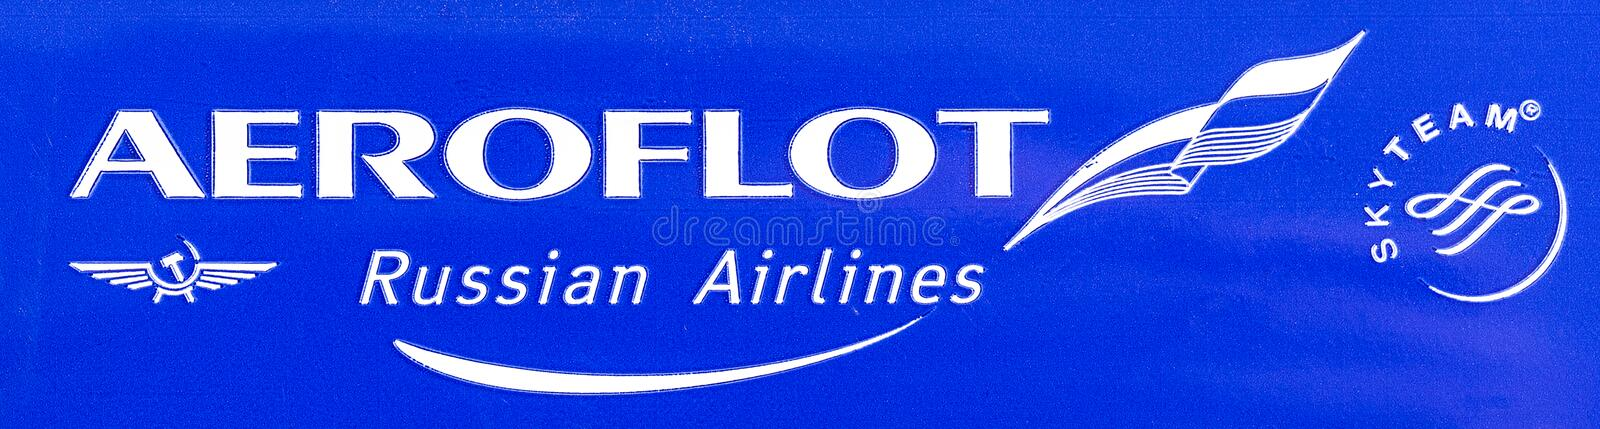 Close-up shot of banner with SkyTeam logo royalty free stock image